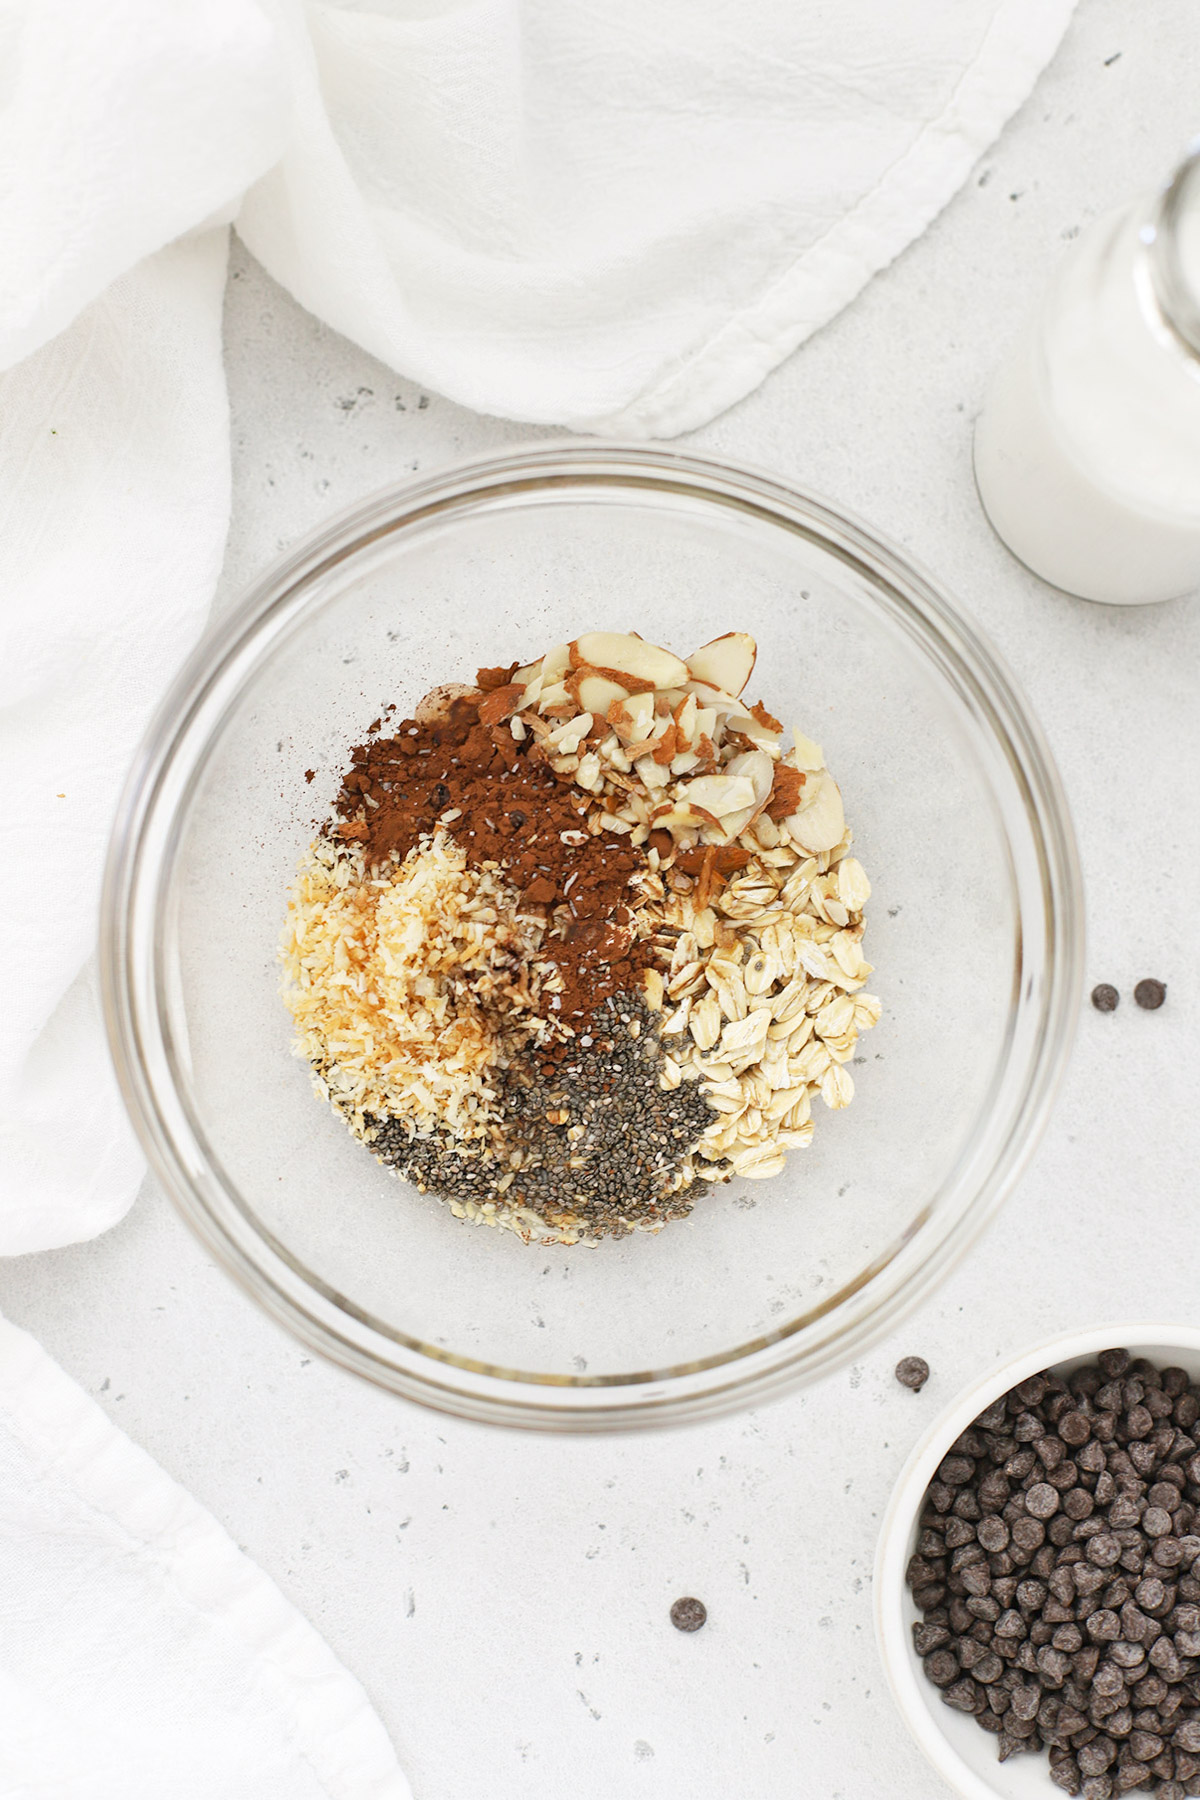 Overhead view of ingredients for making Almond Joy Overnight Oats